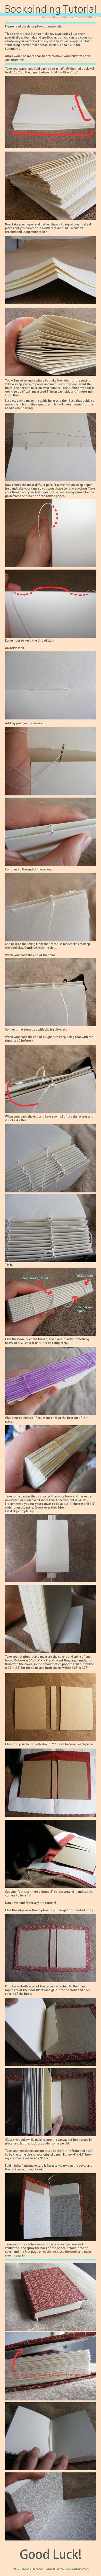 Como hacer un libro Bookbinding Tutorial by =JamesDarrow